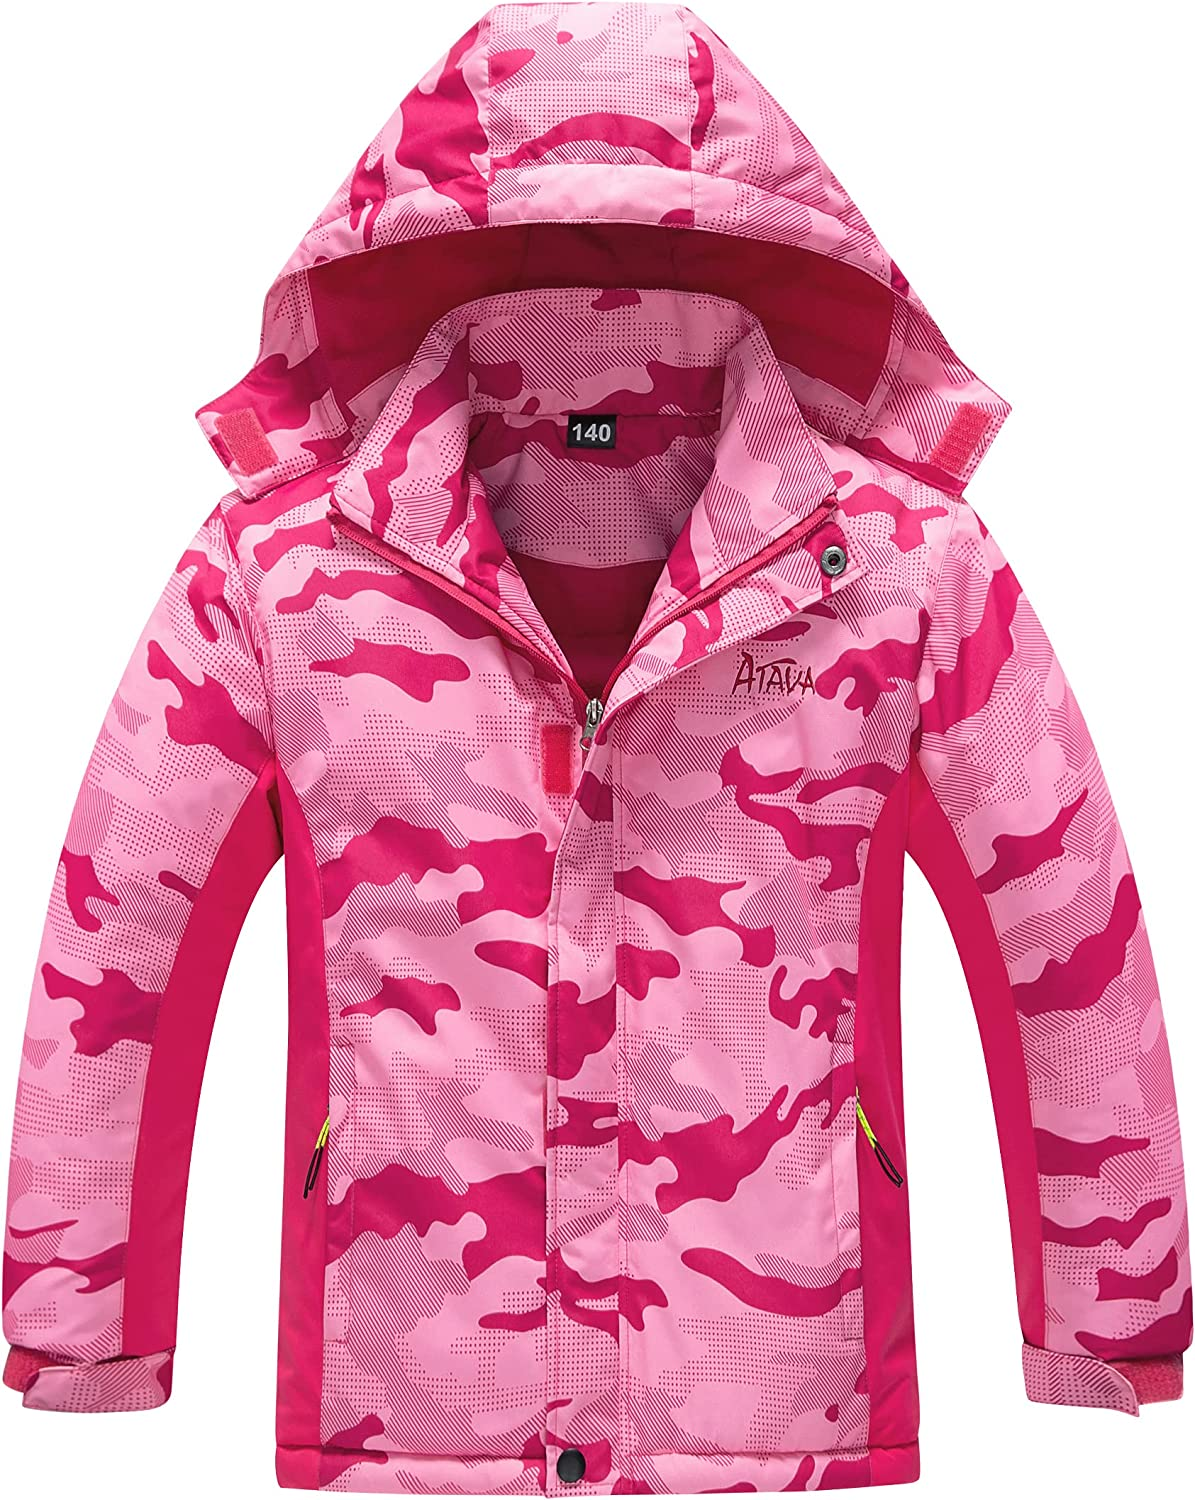 Hiheart Boys Girls Hooded Thick Padded Jacket Windproof Coat